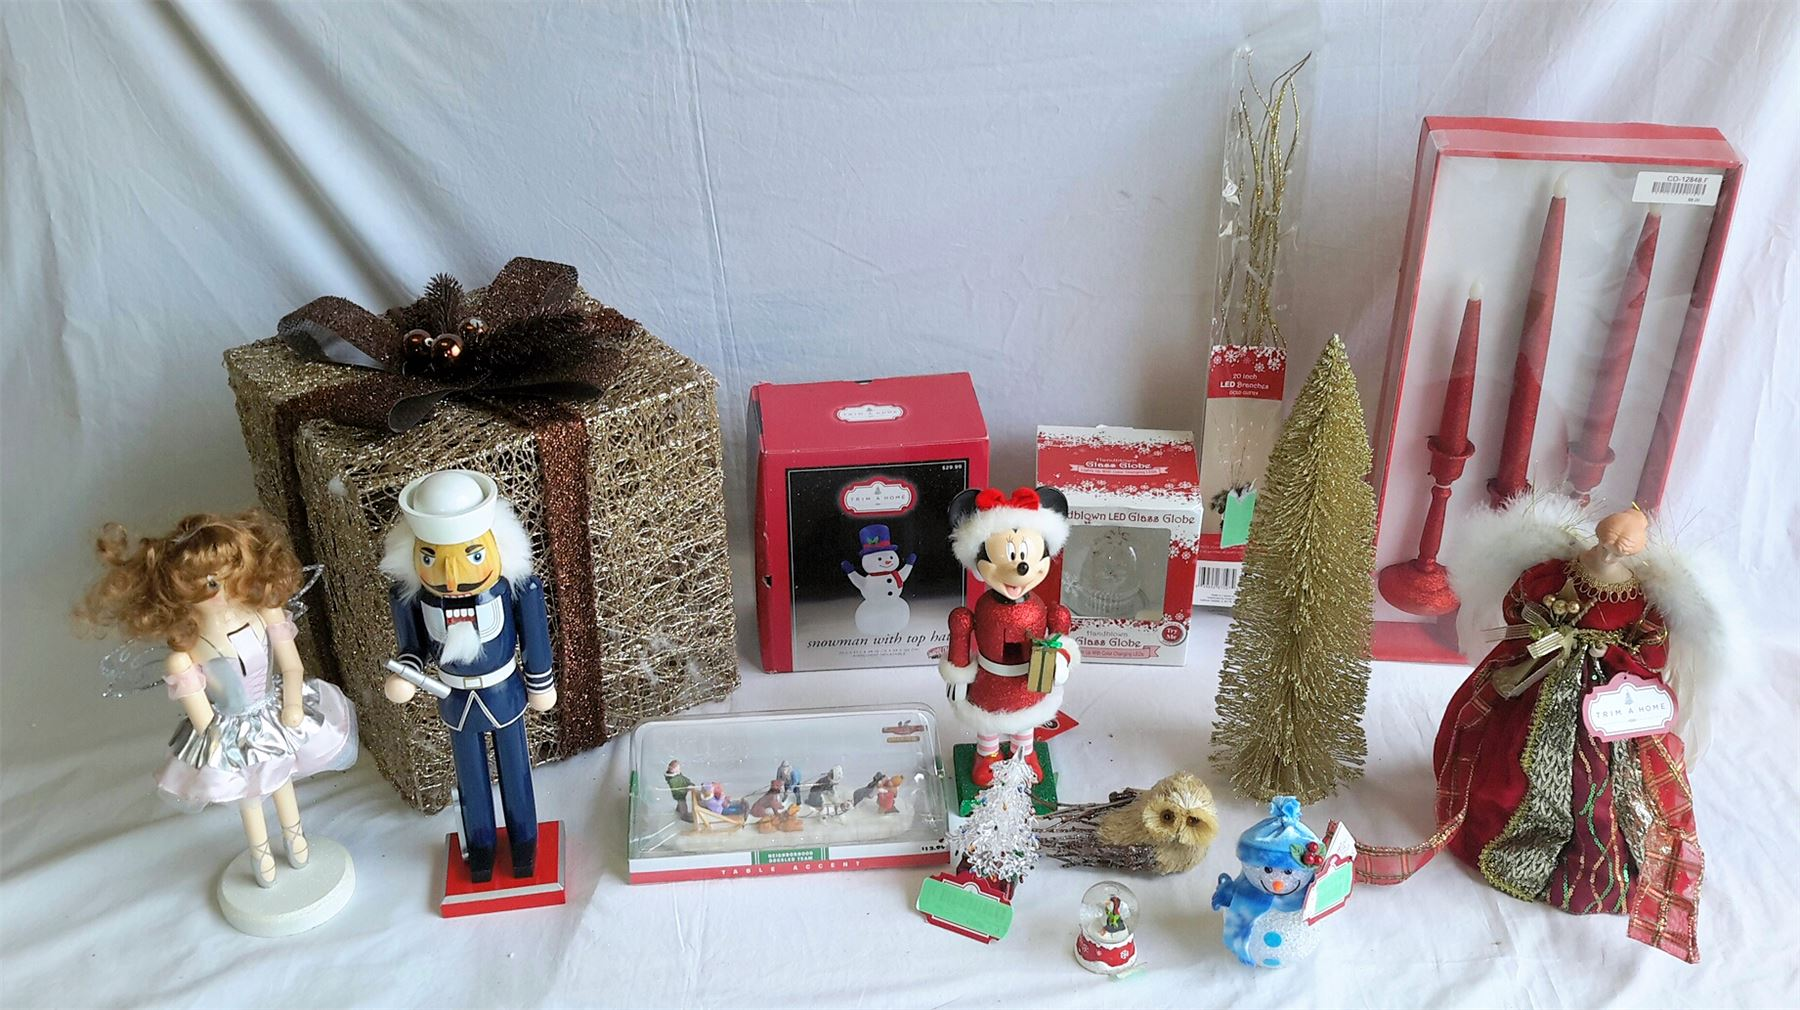 Wholesale Lot Of 21 Assorted Holiday Christmas Decor Items Brand New Decorations